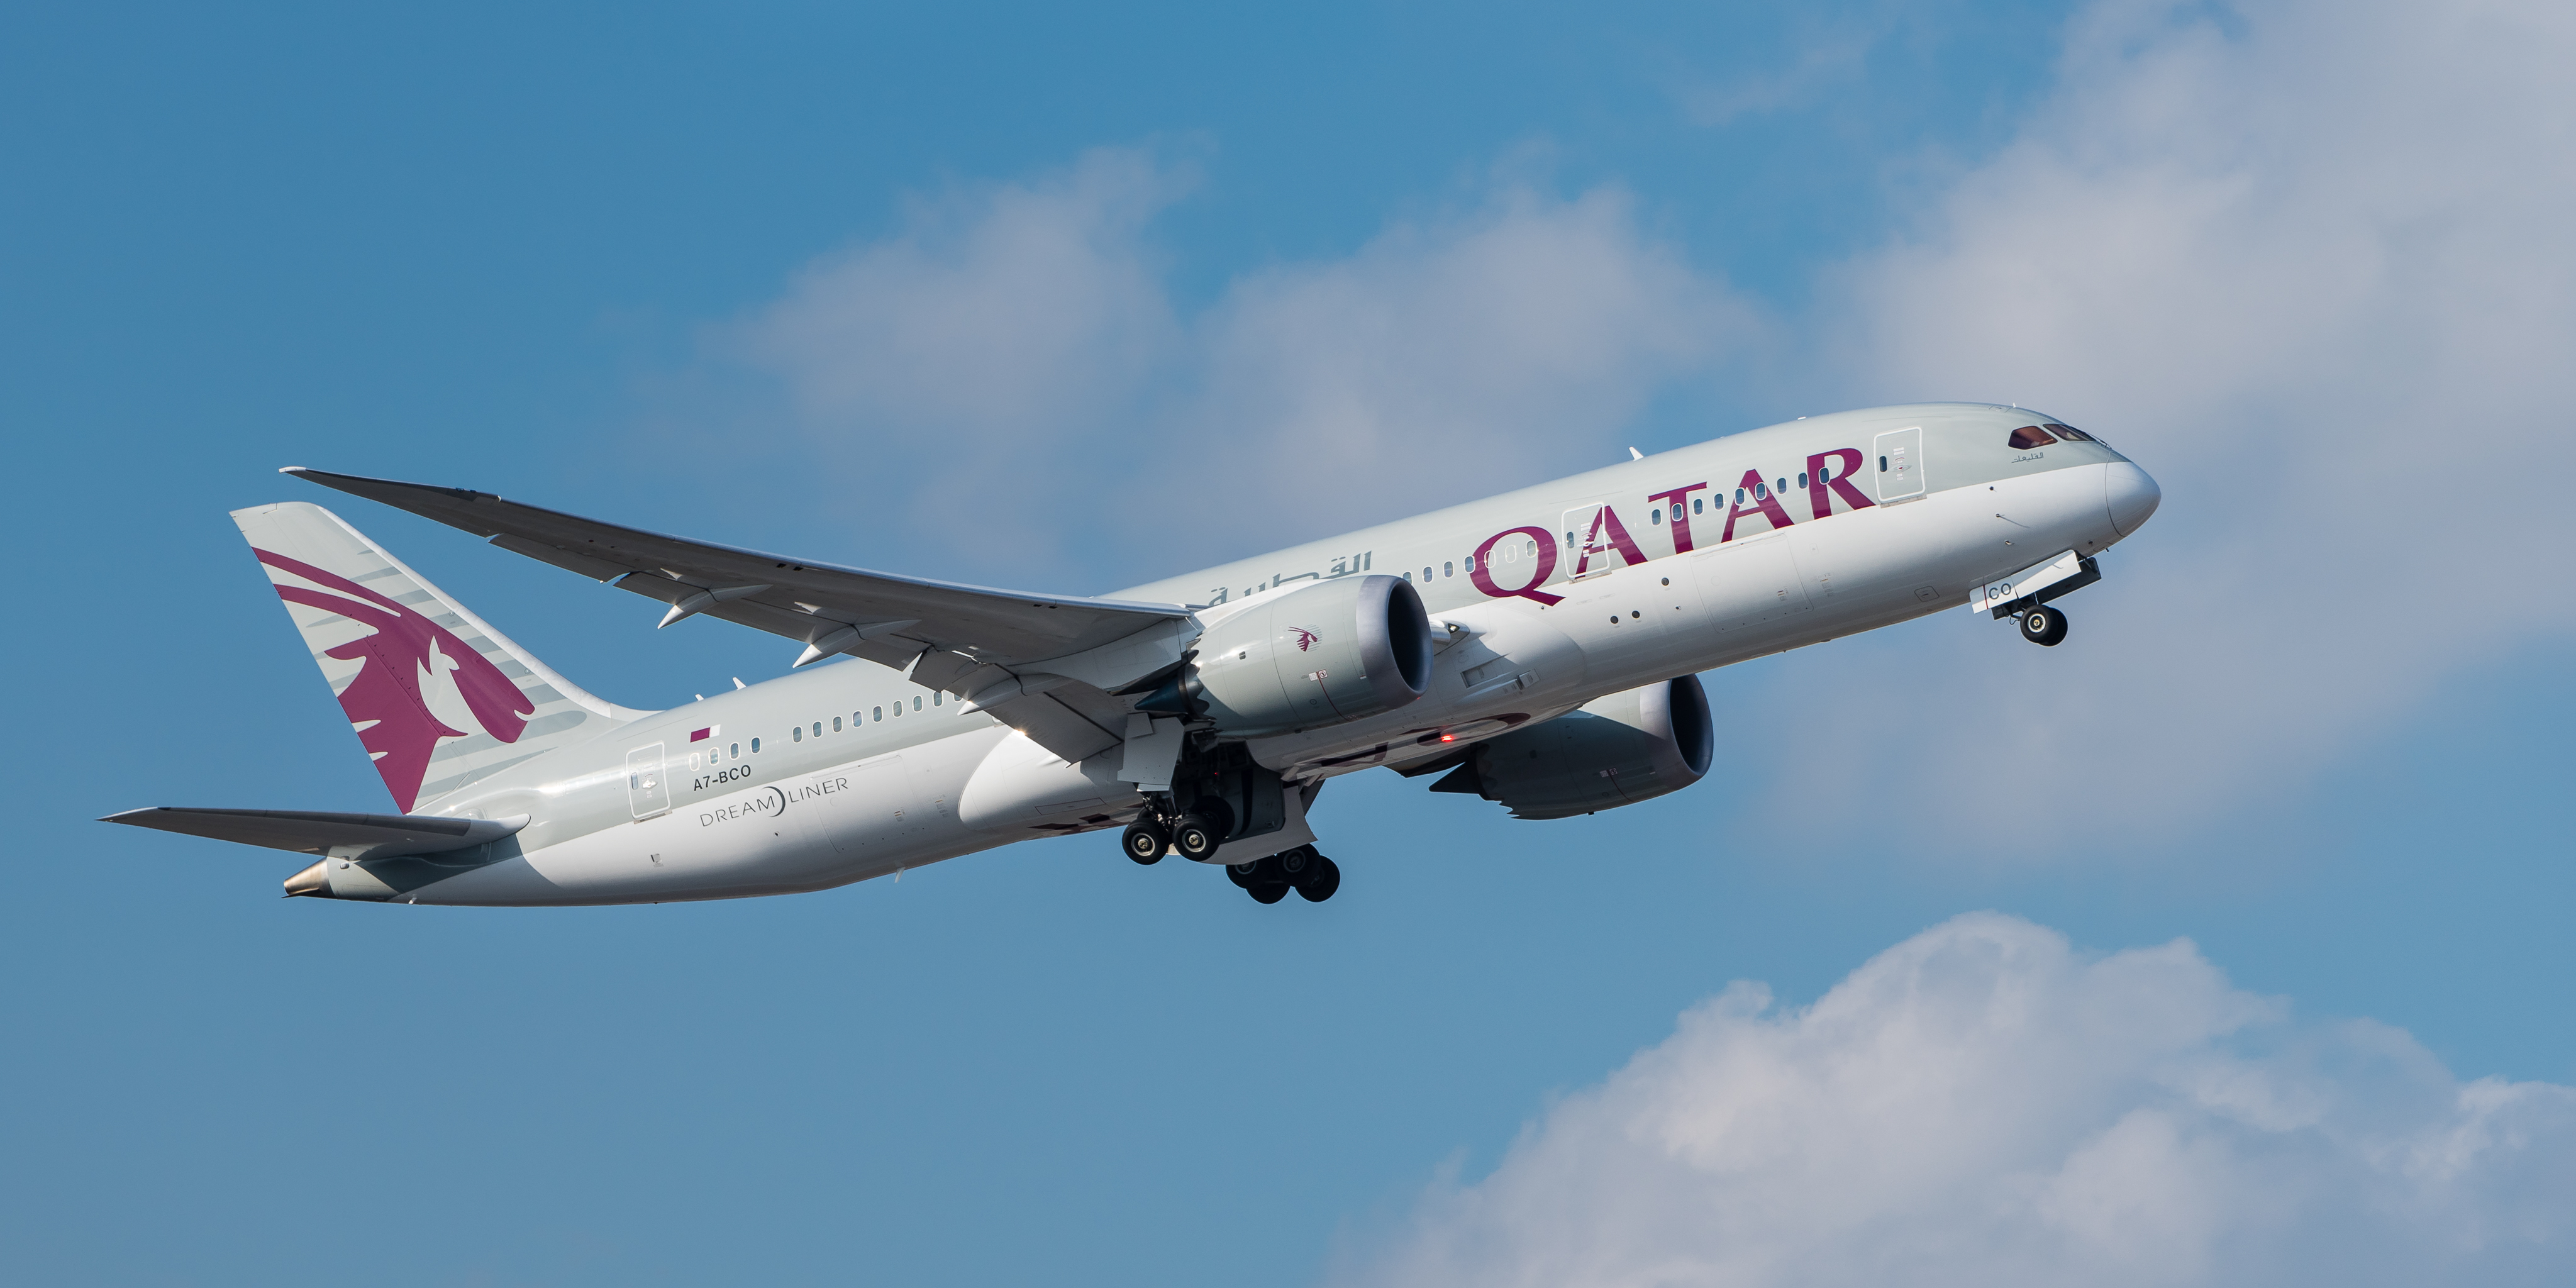 All the offices of Qatar Airways have been shut down in UAE.